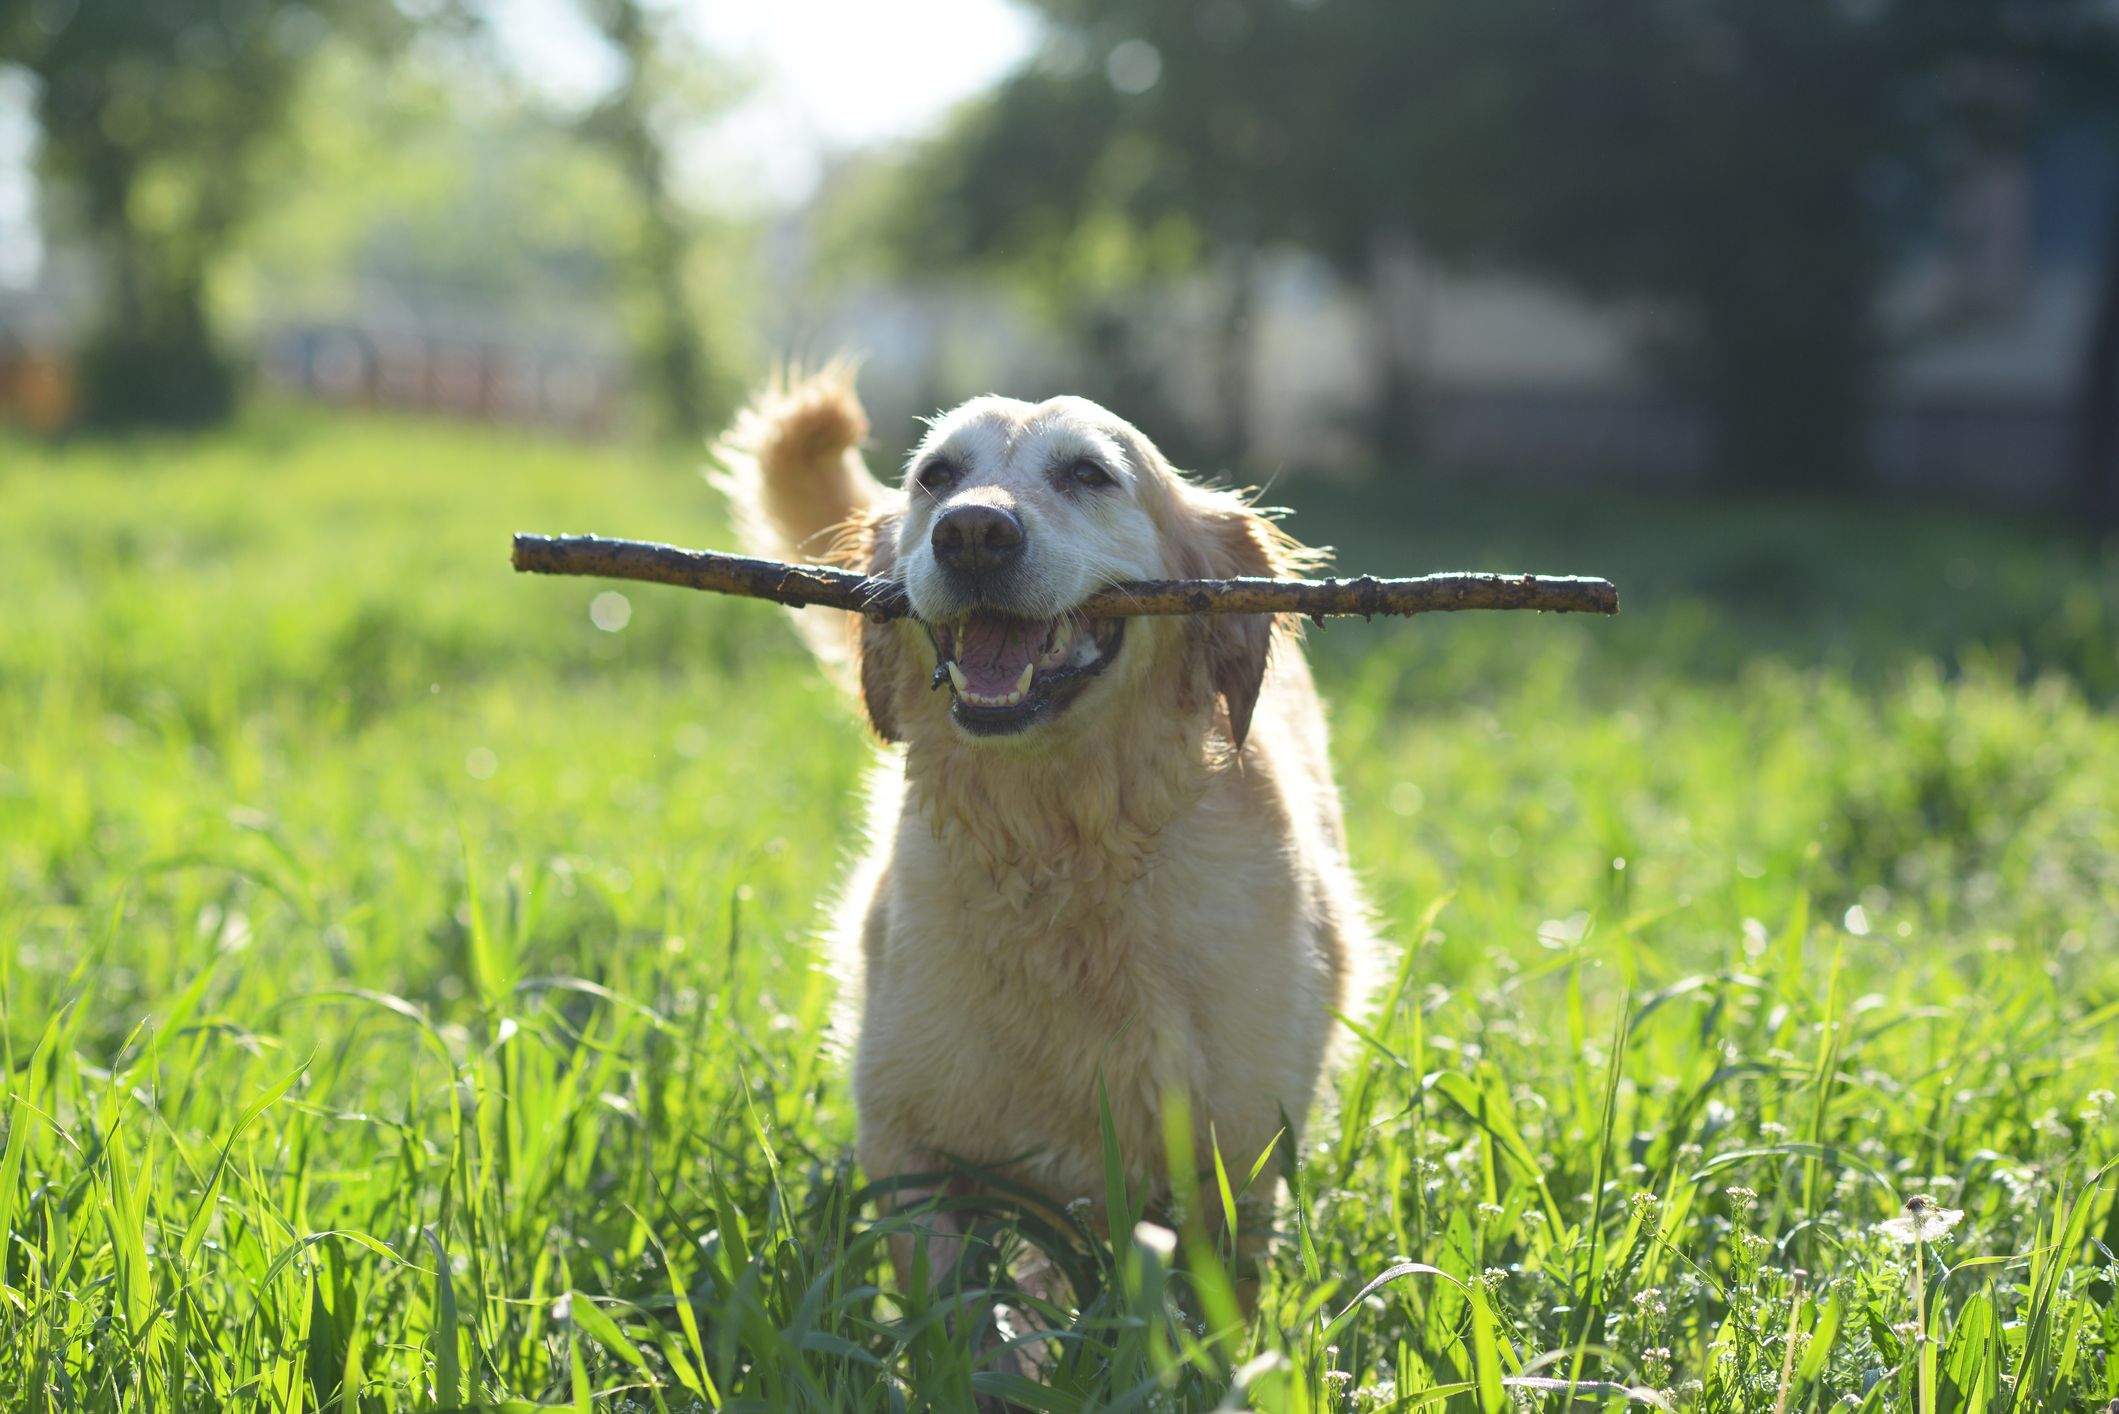 6 dog games great for training and bonding